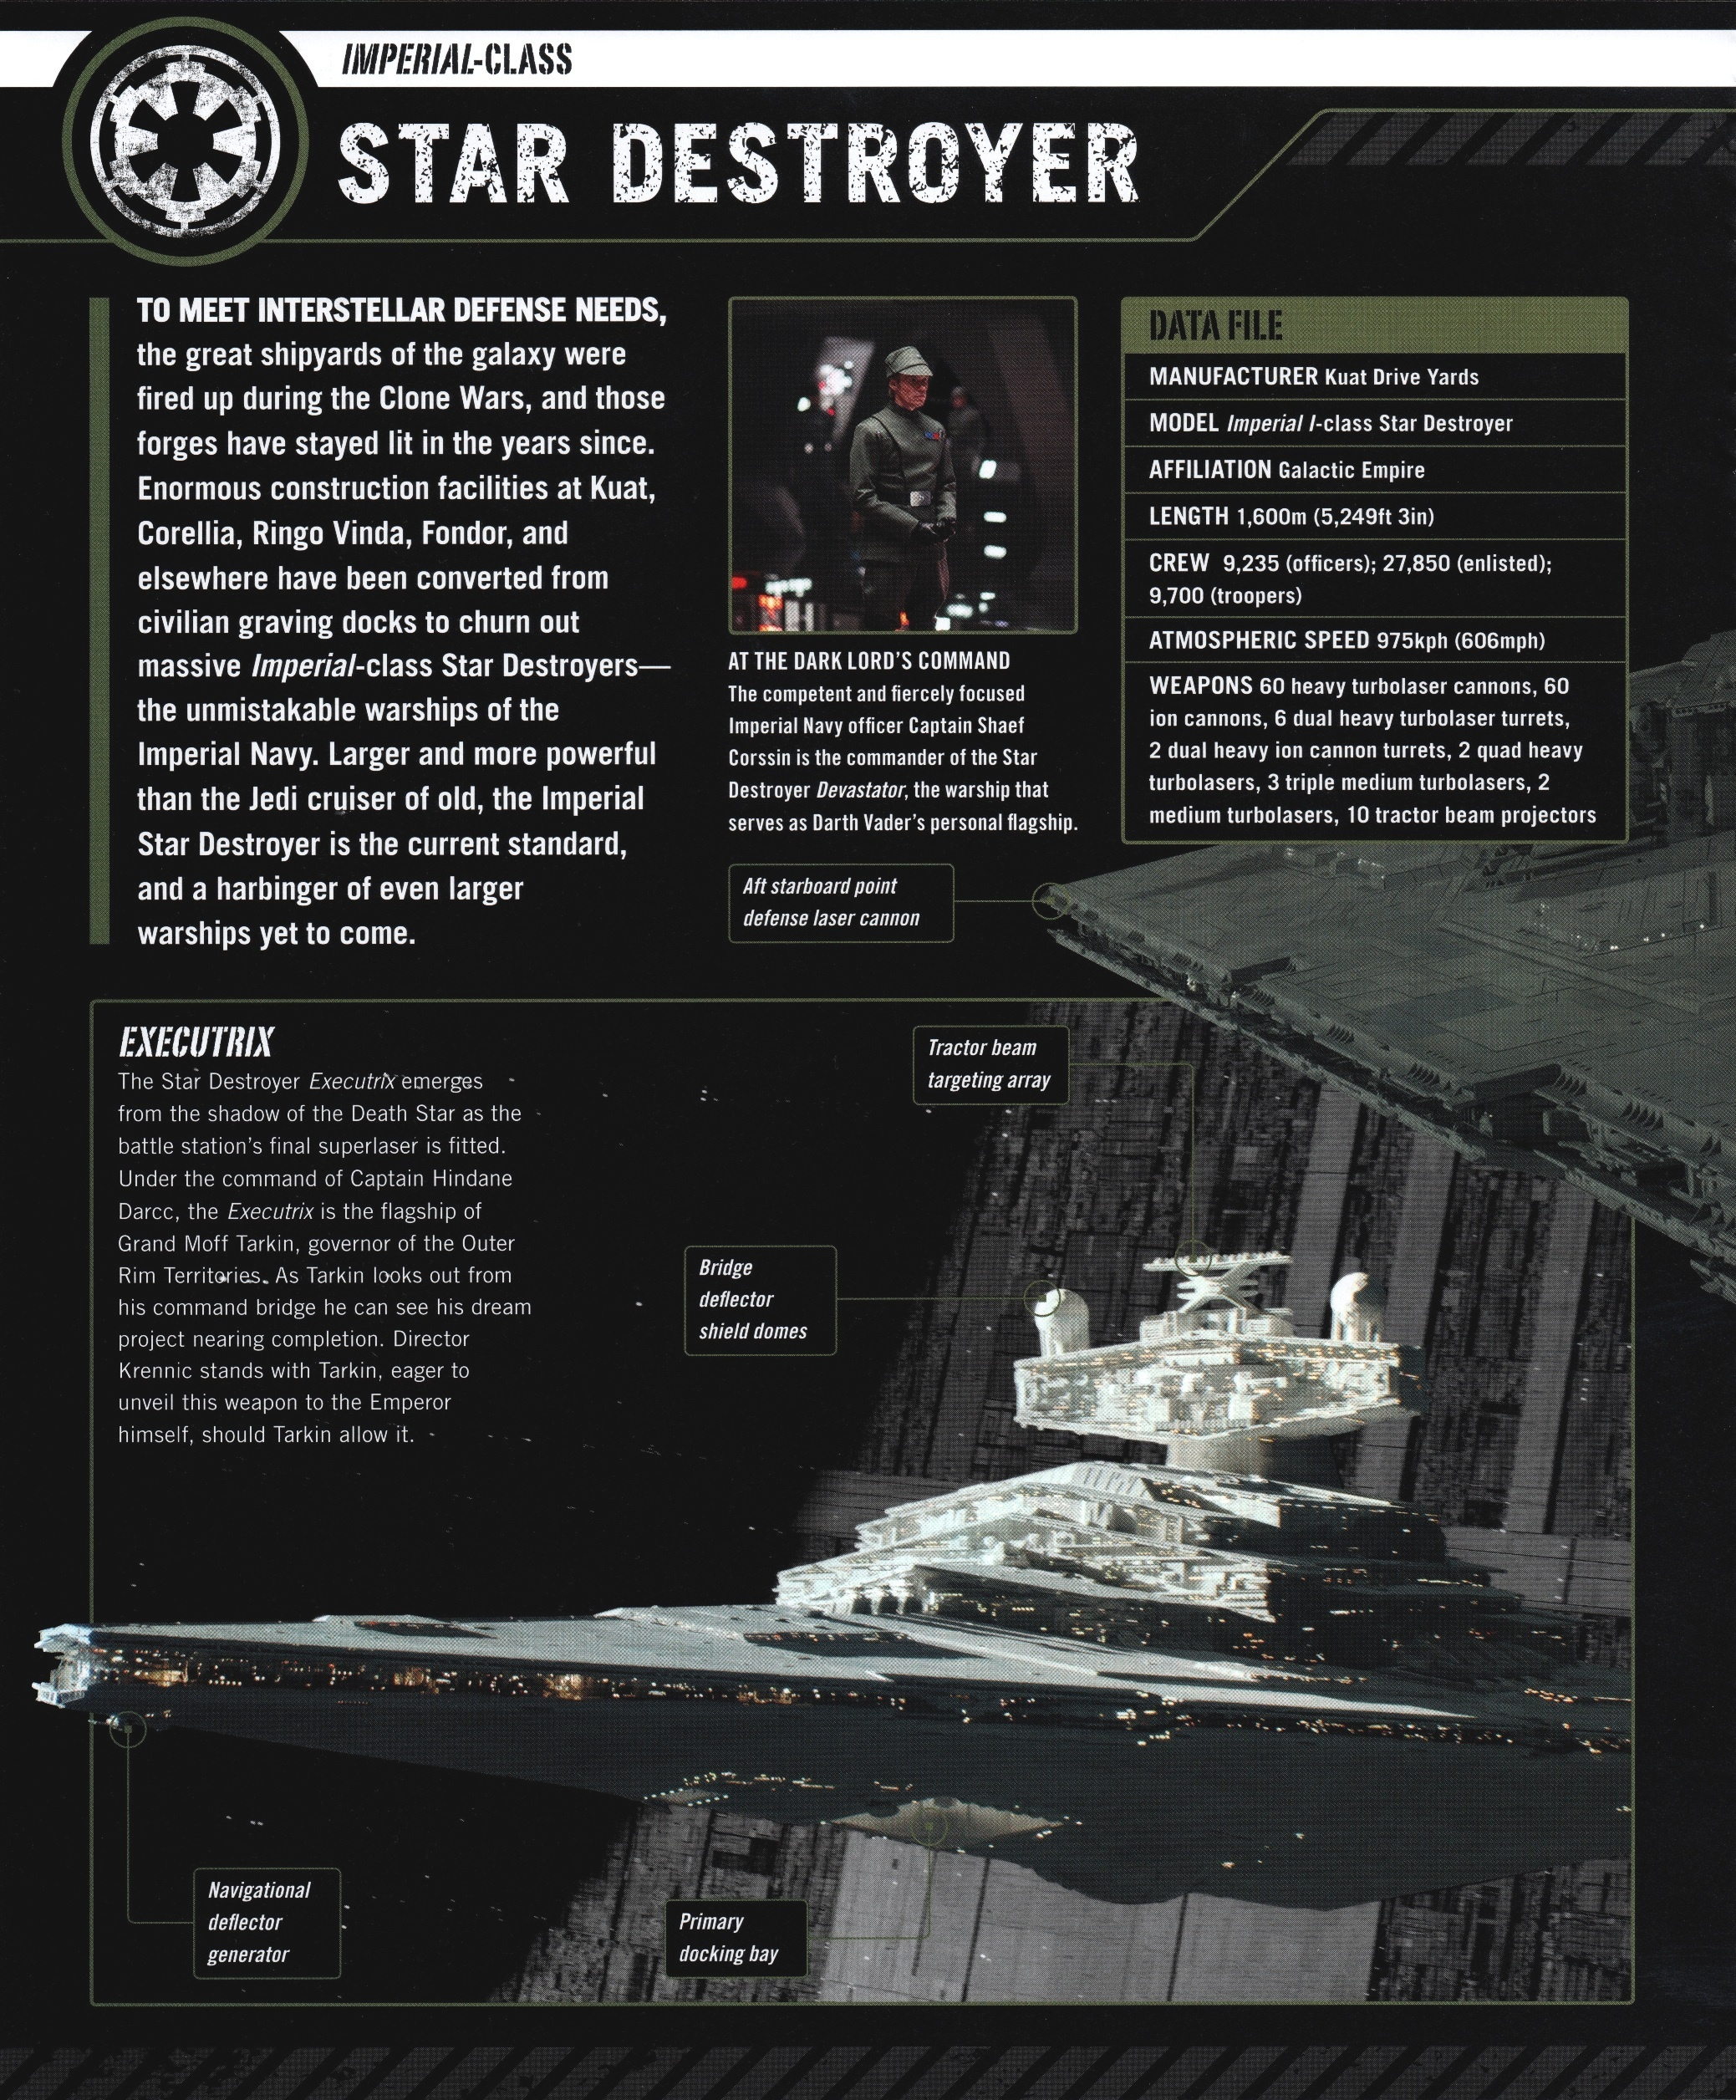 Rogue One Ultimate Visual Guide (b0bafett_Empire) p116